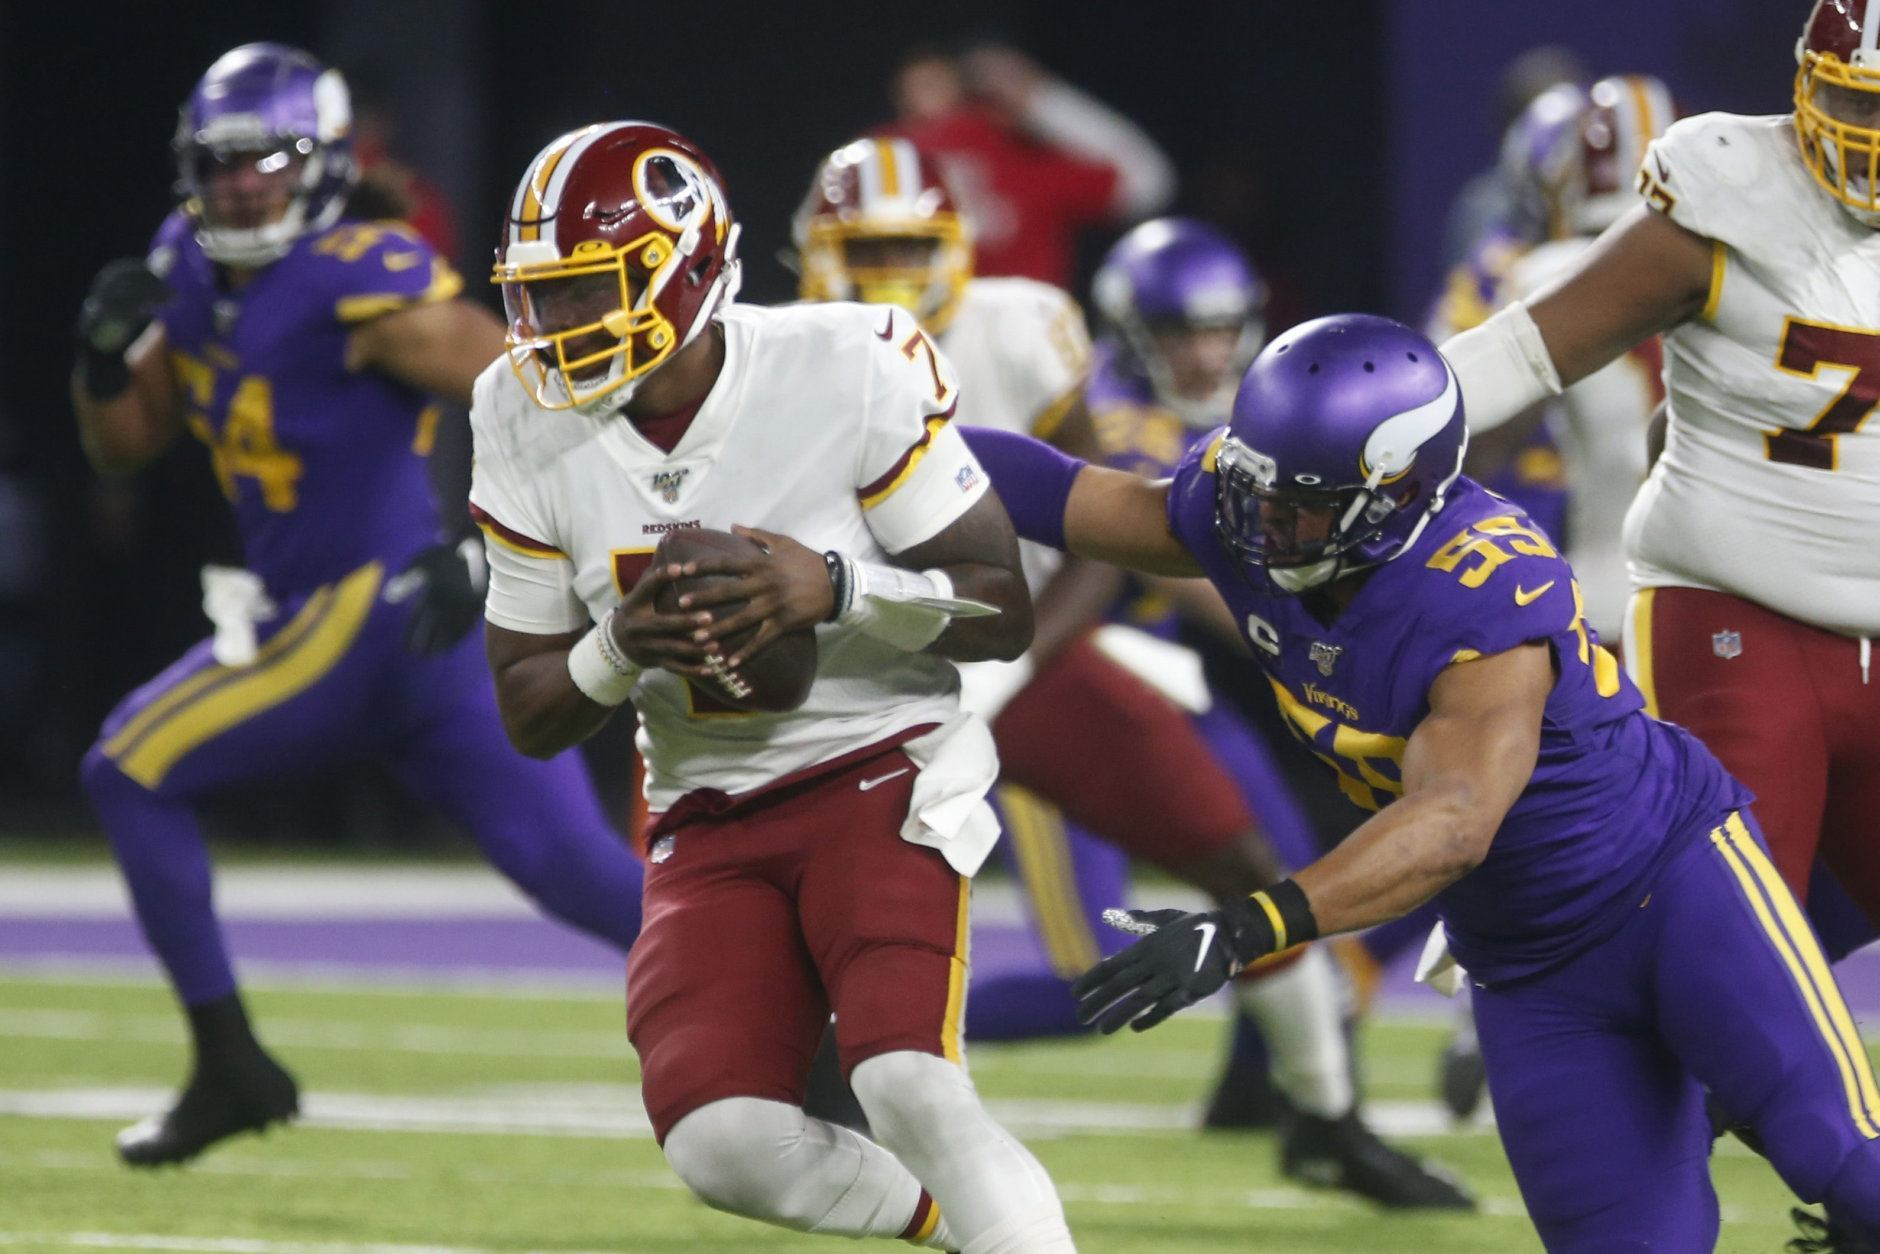 """<p><b>Second Half Predictions:</b></p> <p><em><b>The Redskins finish 3-13.</b></em></p> <p>Somehow it feels like I&#8217;m overrating them. The only game in which they could plausibly be favored is the home game against the equally-putrid Jets, but <a href=""""https://wtop.com/sports-columns/2019/10/column-did-skins-actually-learn-anything-from-firing-jay-gruden/"""">as we&#8217;ve seen in Landover</a>, the &#8216;Skins don&#8217;t have a home-field advantage <i>at all</i>. A 2-14 finish feels more likely, but I&#8217;m banking on them stealing at least one more somewhere we don&#8217;t expect. Let&#8217;s just hope Dwayne Haskins doesn&#8217;t get killed in the process.</p> <p><em><strong>The Browns get it together (kinda).</strong></em></p> <p>Not enough to make the playoffs, mind you. But the only team with a winning record on Cleveland&#8217;s remaining schedule is the Ravens, who the Brownies beat handily in Baltimore in Week 3. I&#8217;m not saying they&#8217;ll run the table, but going 4-4 or better in the second half will help the Dawg Pound feel like not all is lost.</p> <p><em><b>The Saints beat the Patriots in Super Bowl LIV.</b></em></p> <p>I picked the wrong NFC South team to <a href=""""https://wtop.com/gallery/nfl/2019-nfl-playoff-predictions/"""">represent the conference in Miami</a> so now&#8217;s the time to bail on my worst preseason pick and jump on the bandwagon of the team <a href=""""https://wtop.com/nfl/2018/09/2018-nfl-playoff-predictions/"""">I picked to win it all last year</a>.</p>"""